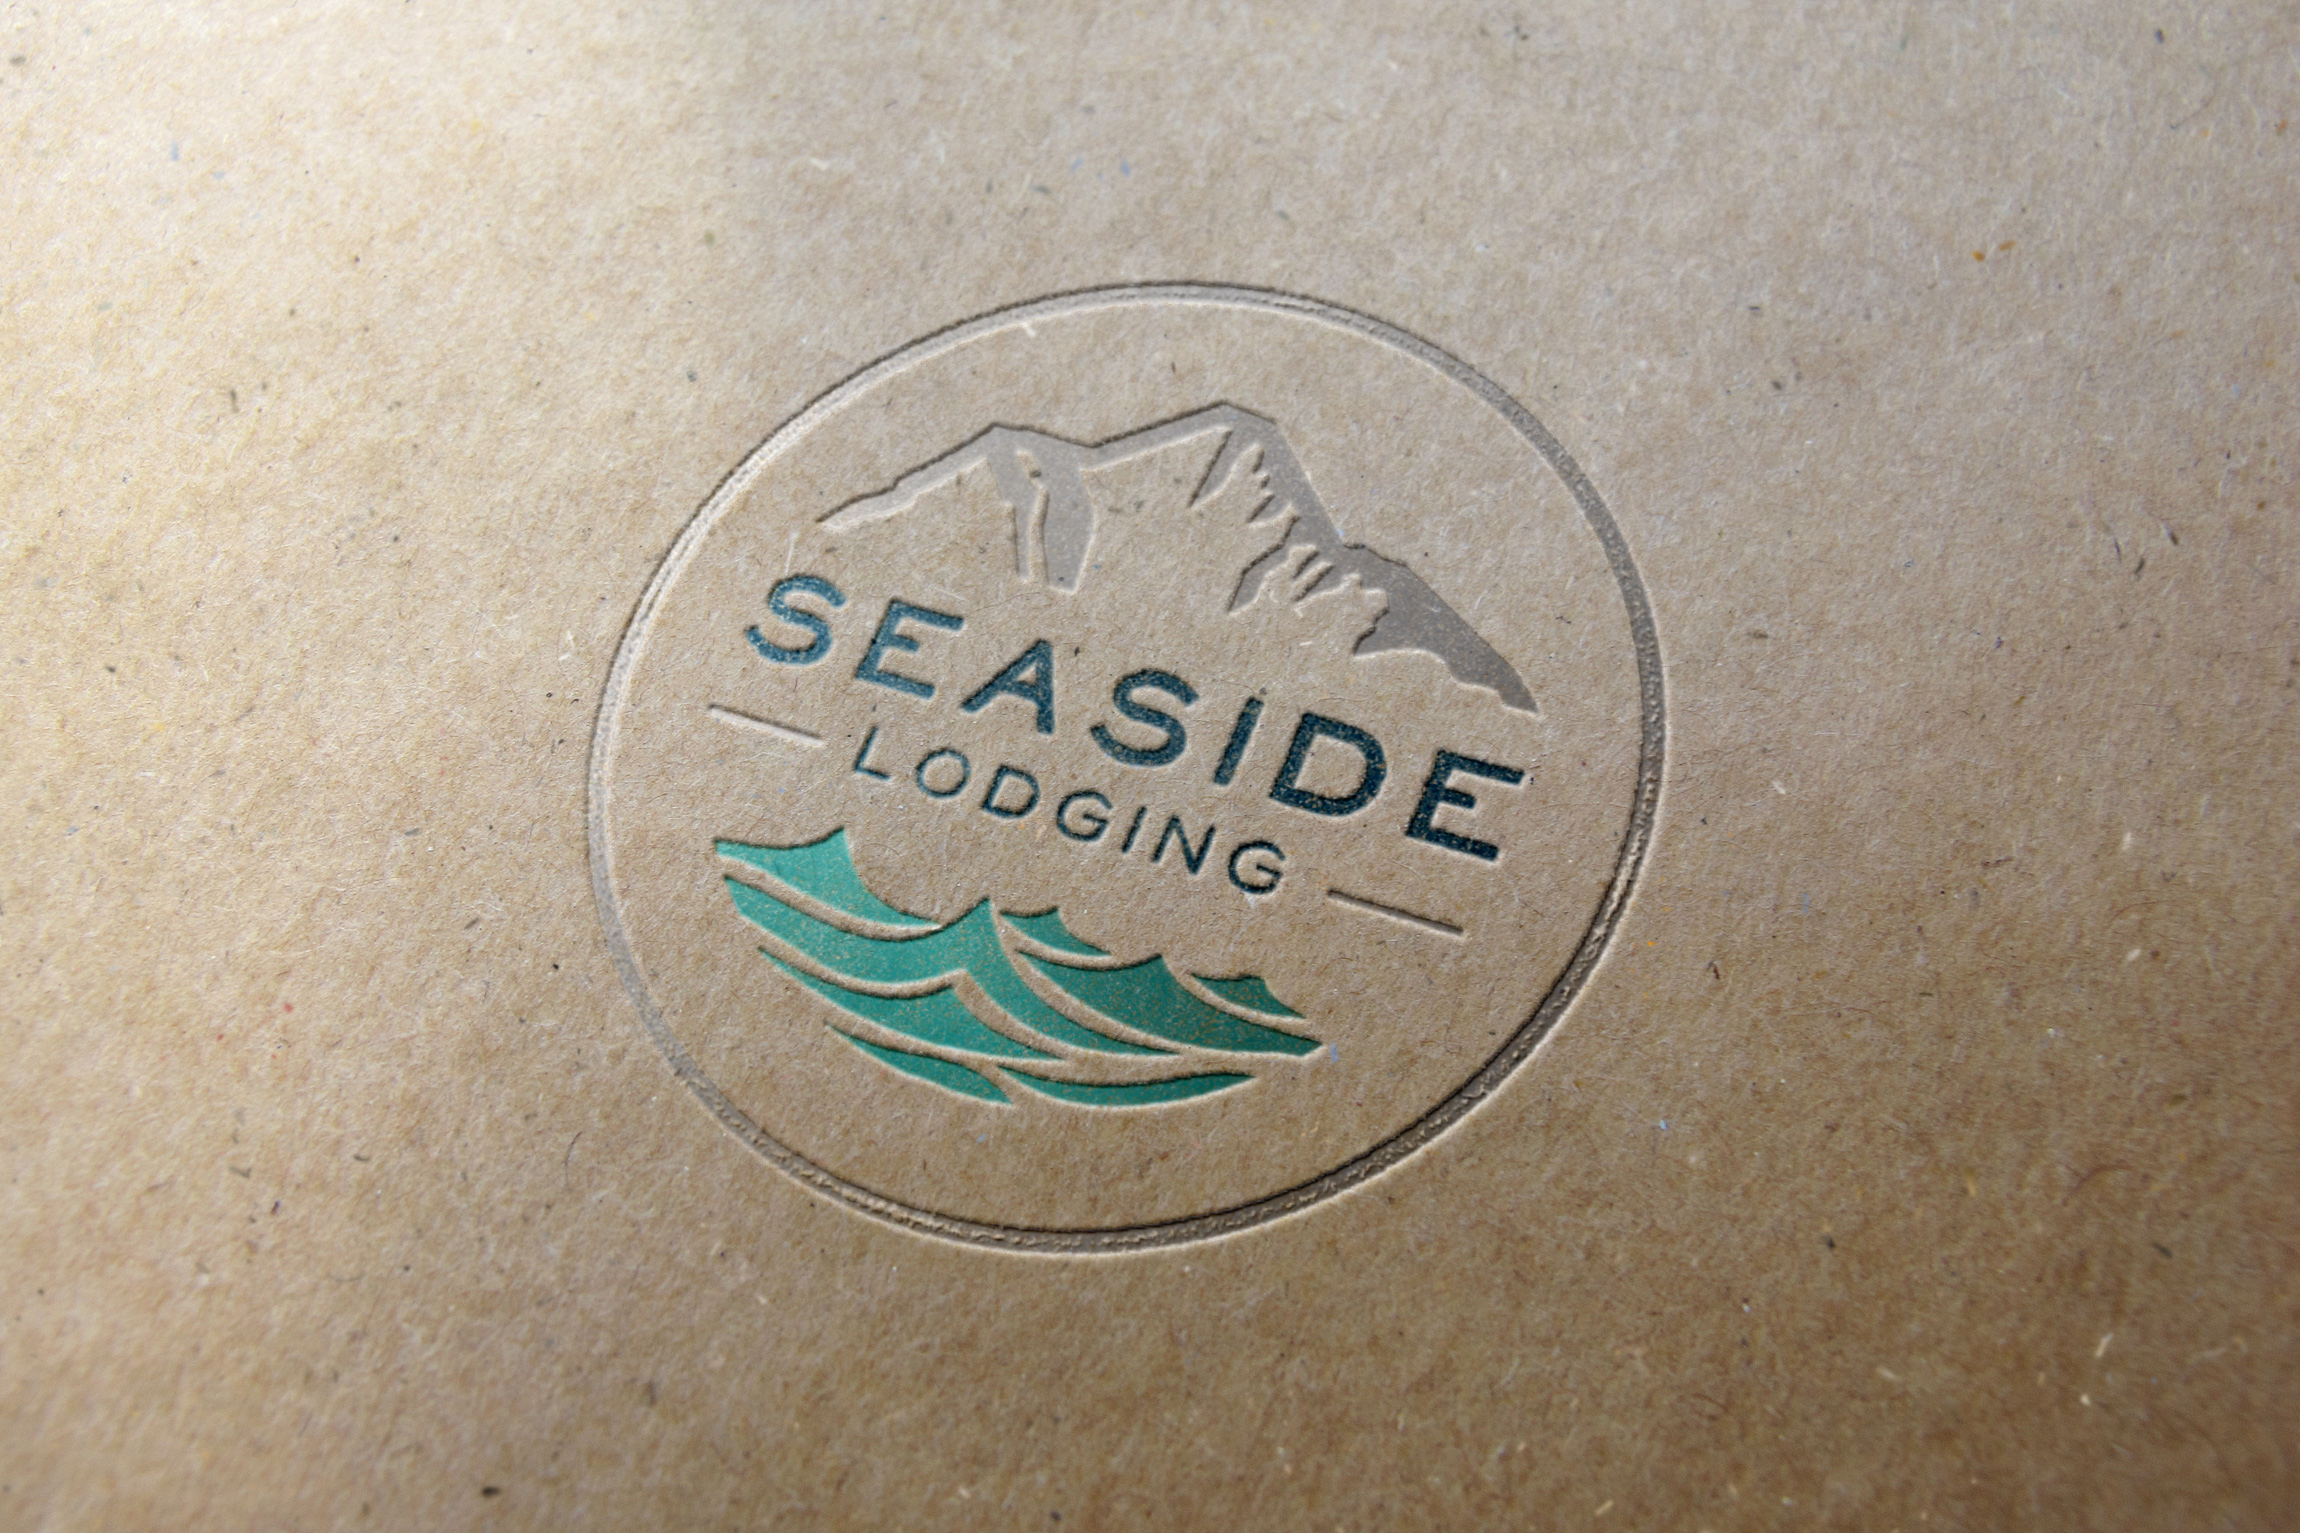 Seaside Lodging Identity